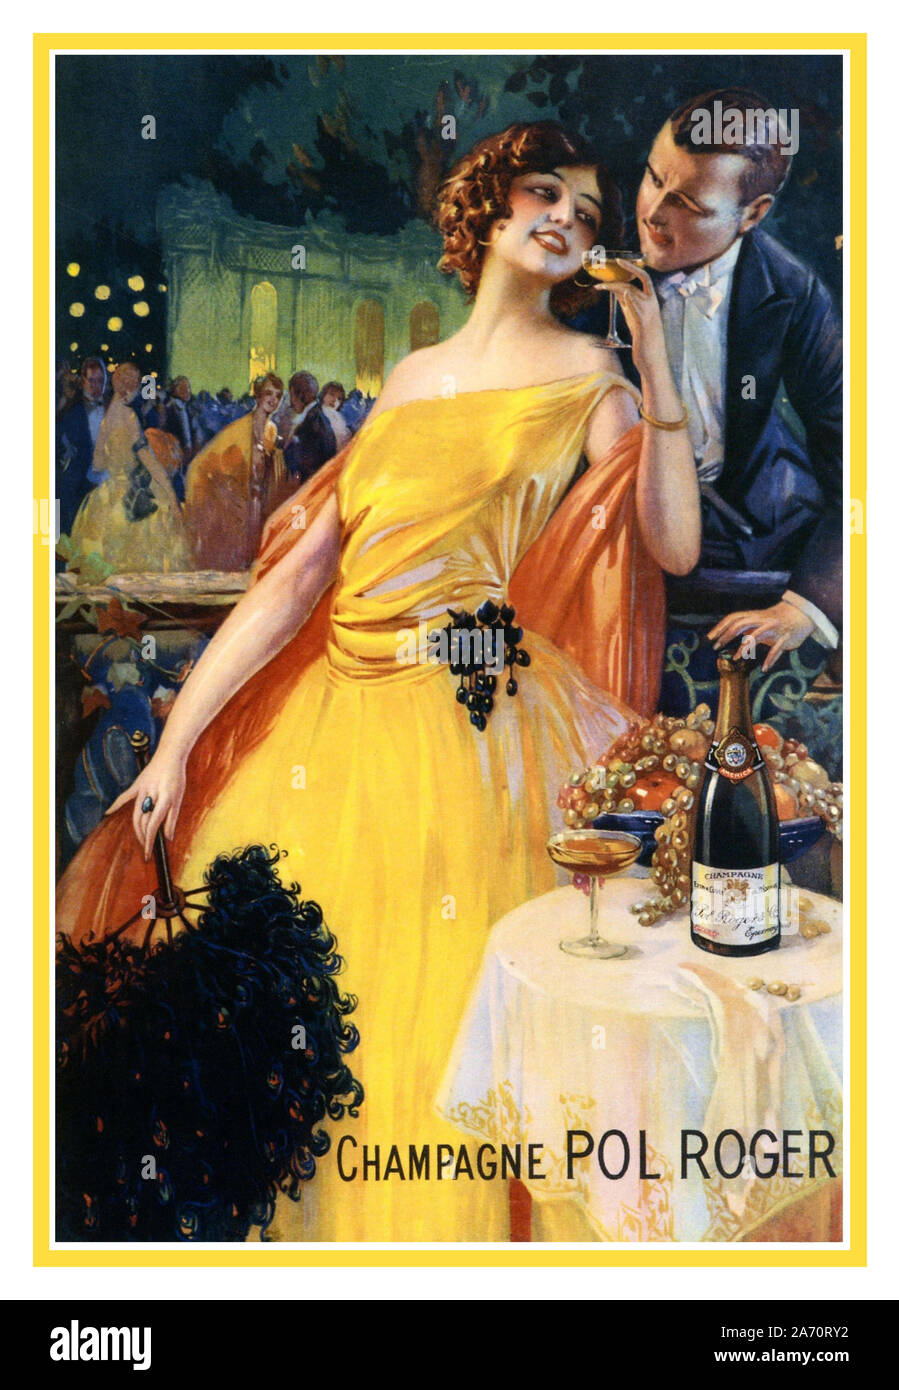 https www alamy com vintage champagne pol roger french advertising poster 1920 by gaspar camps illustrating a luxury lifestyle france image331318374 html